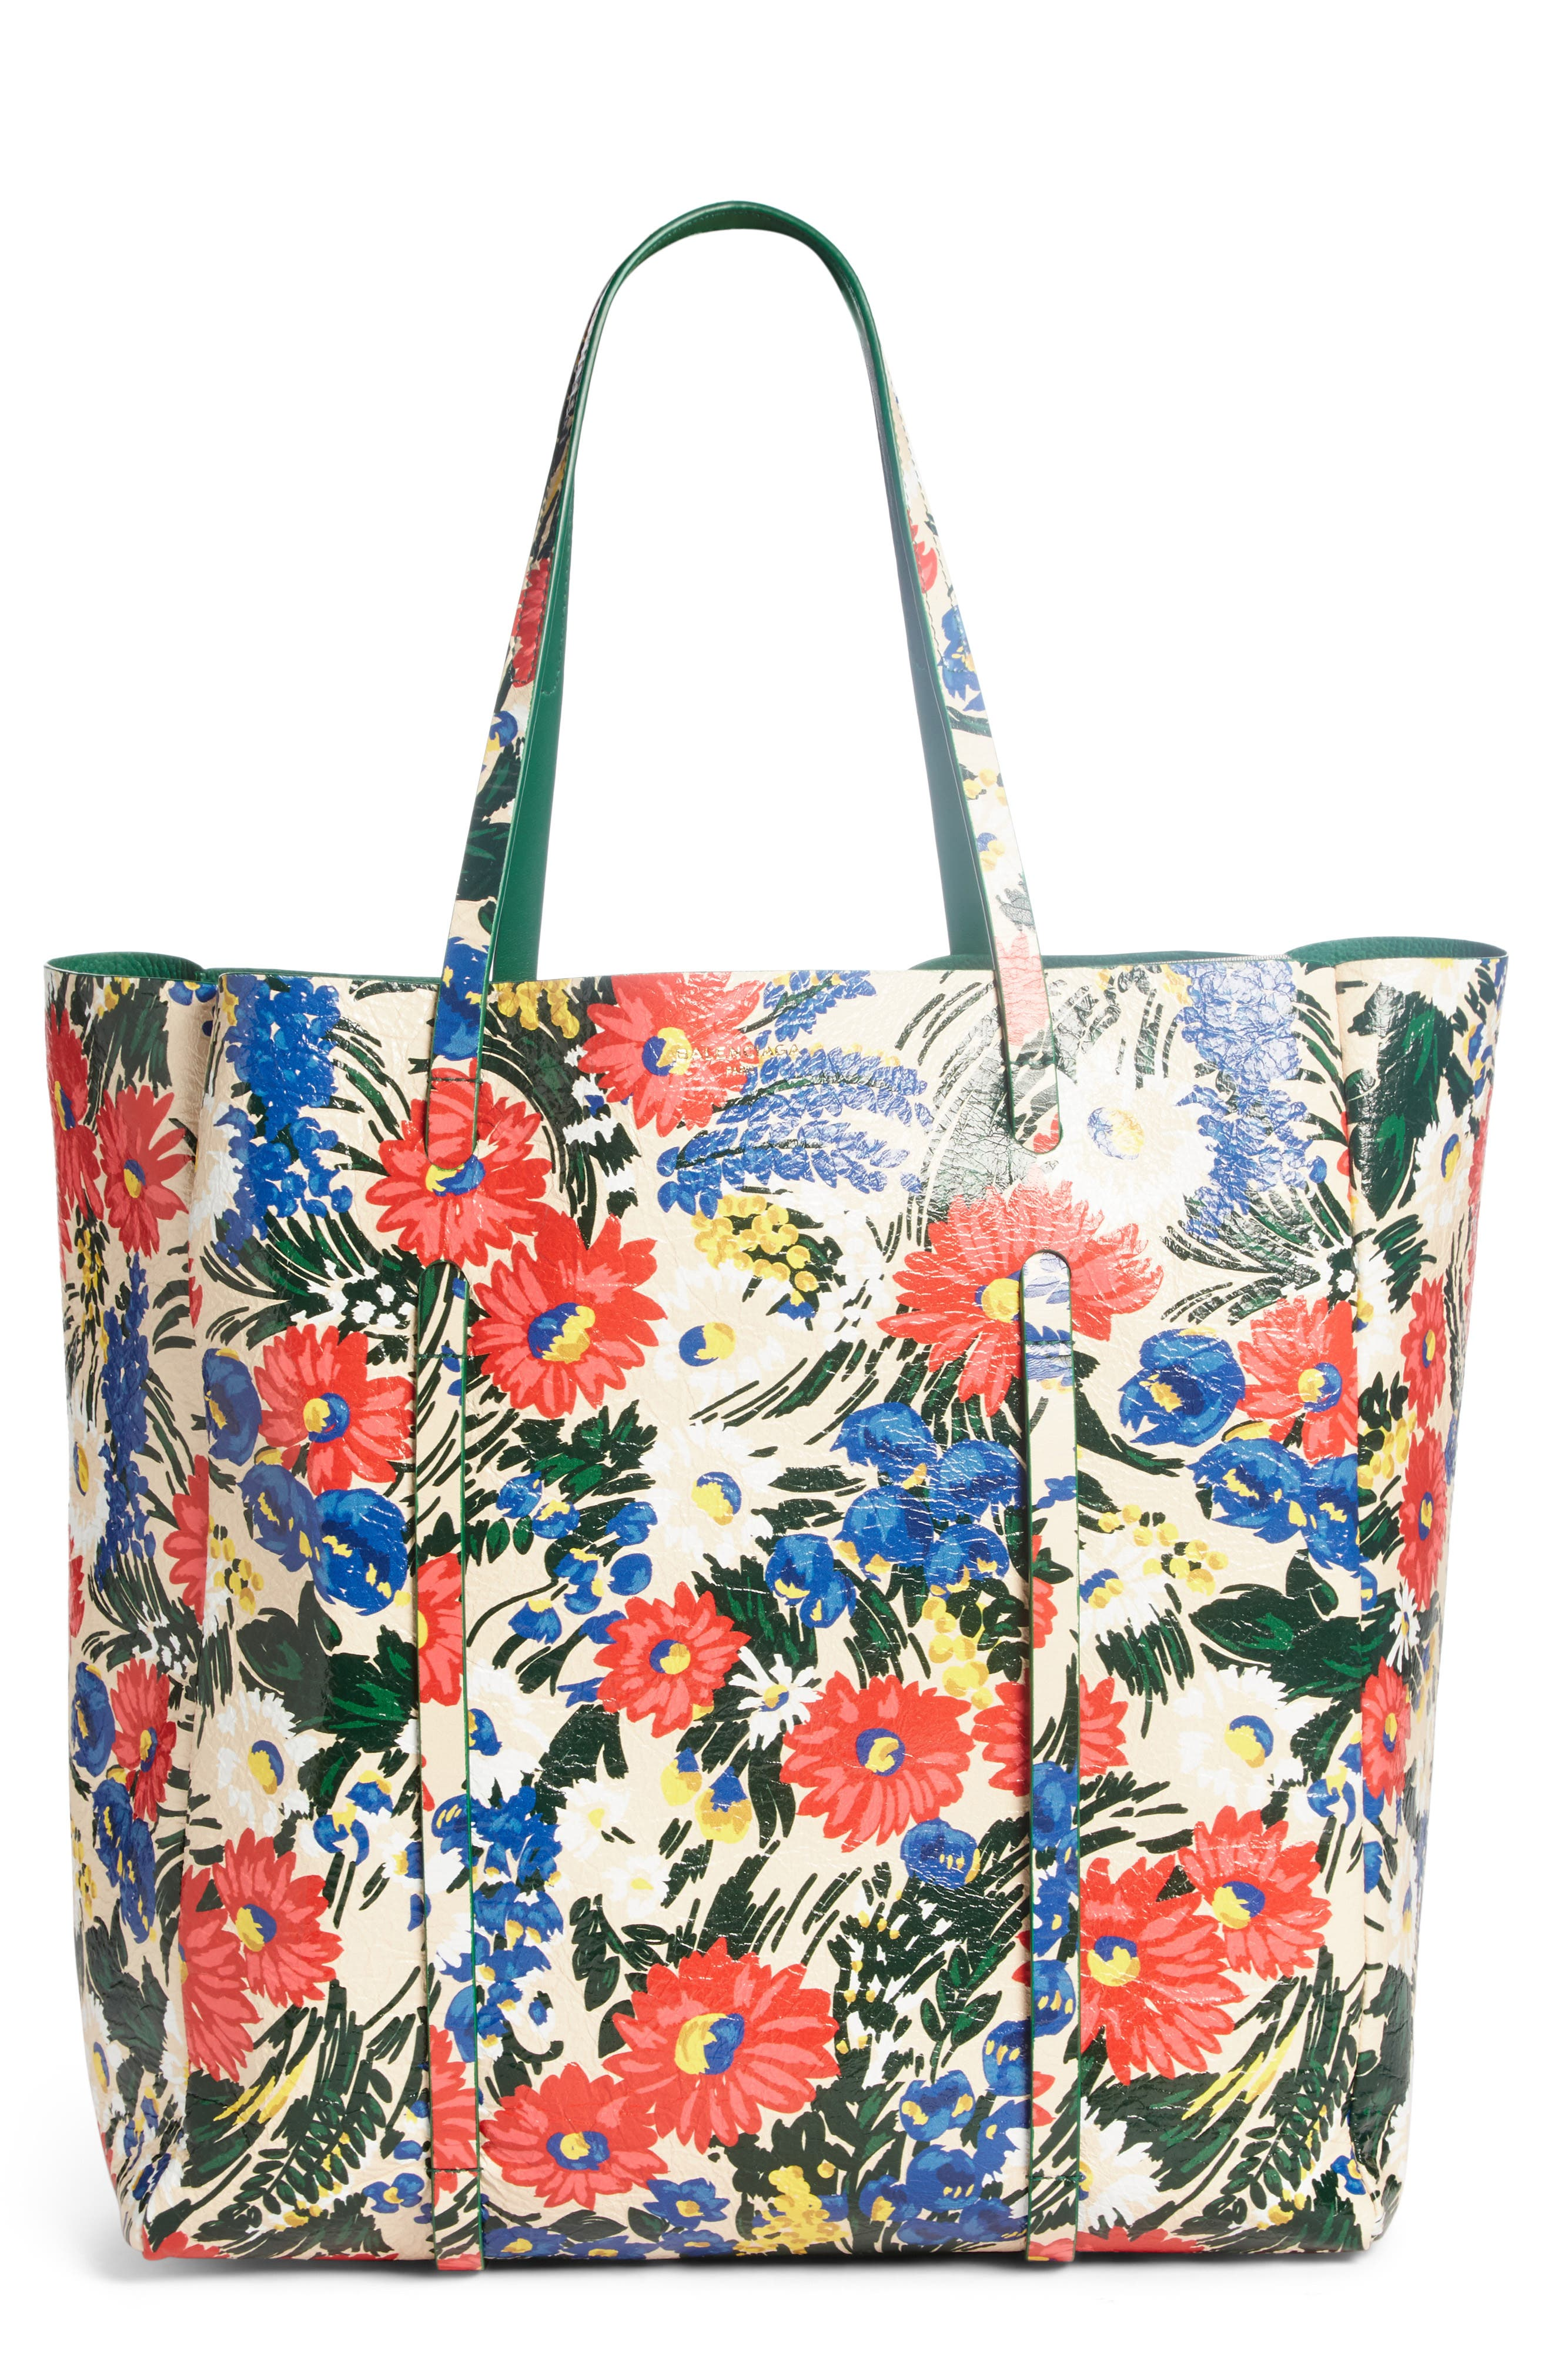 Balenciaga Medium Everyday Floral Leather Tote